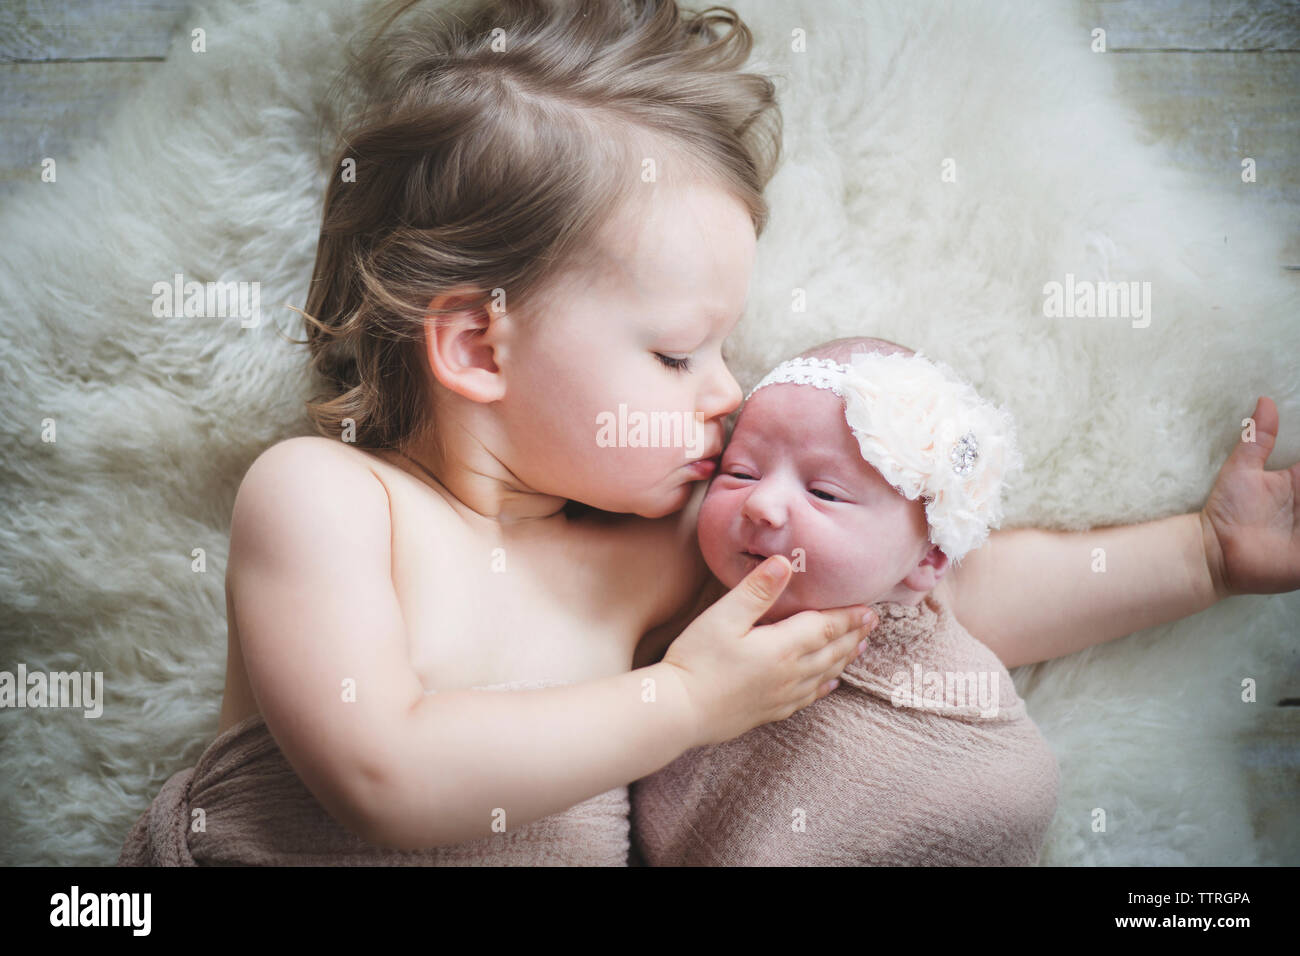 2 Month Old Baby Girl Lying On Her Back High Resolution Stock Photography And Images Alamy